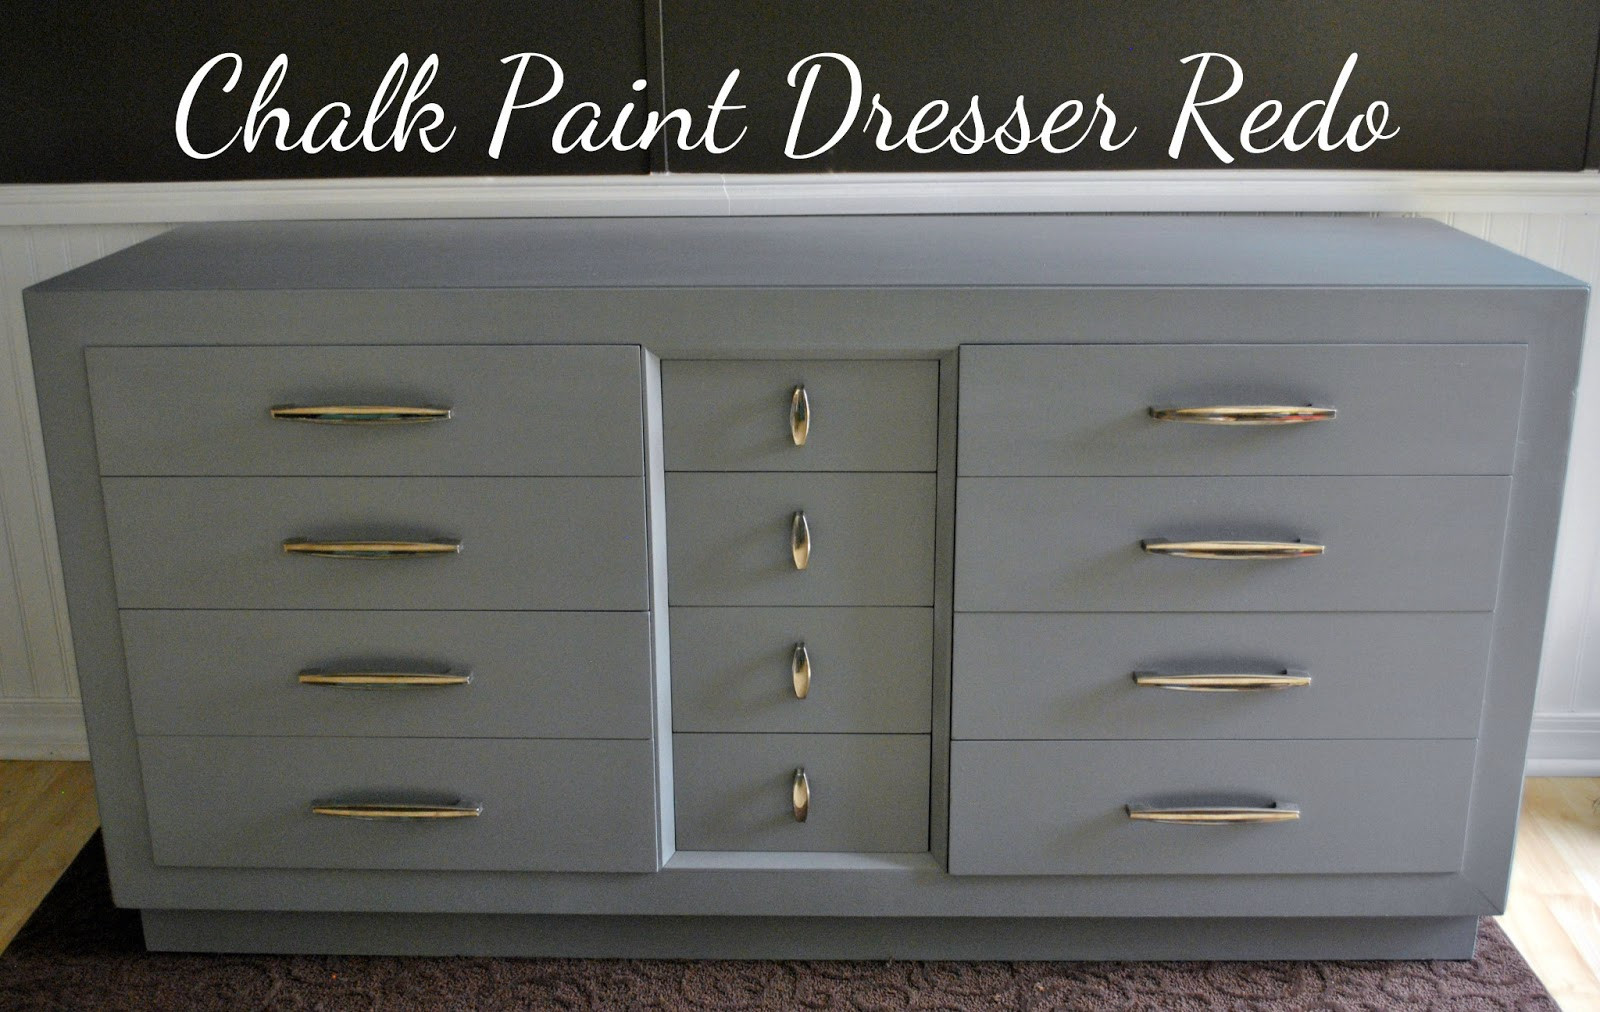 Best ideas about Paint Dresser DIY . Save or Pin Life With 4 Boys DIY Chalk Paint Dresser Redo Now.